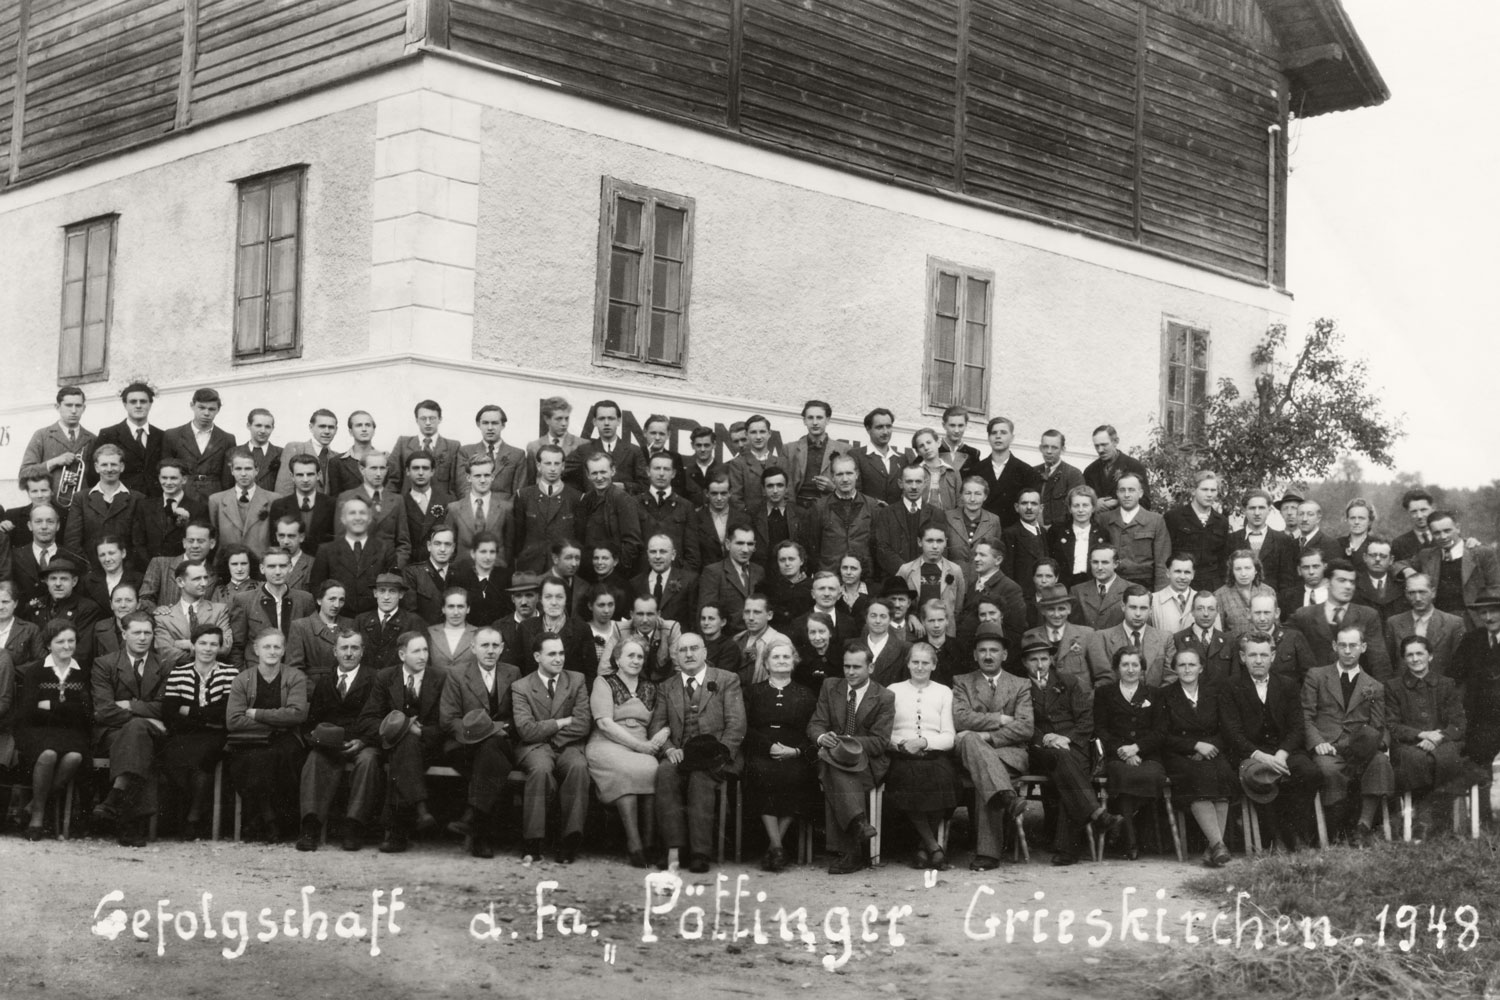 Shortly after the war, PÖTTINGER already had so many employees that it is easy to imagine the cramped working conditions in Plant I.